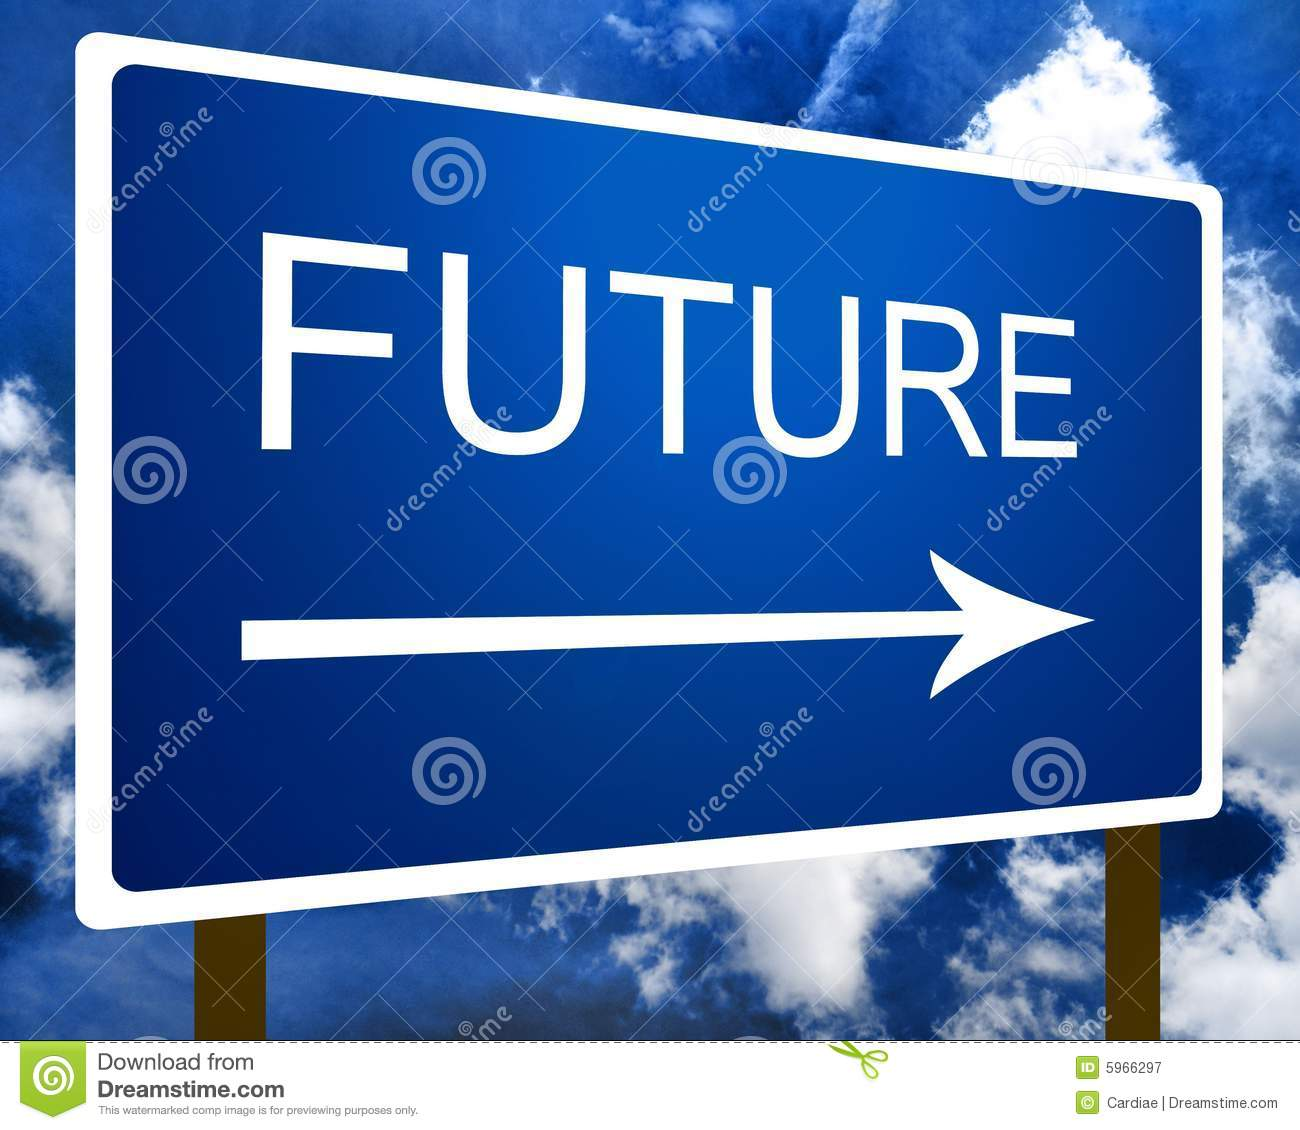 Future Sign Guidepost Stock Illustration Image Of Advice. Visa Credit Card Company Debt Snowball Method. Slider Windows With Grids Boston Mba Program. Mining Stocks With Dividends. Local Air Conditioning Repair. Free Email Newsletter Software. Software Project Manager Iupui Online Courses. Commercial Restroom Supplies. Does Green Coffee Bean Extract Work For Weight Loss